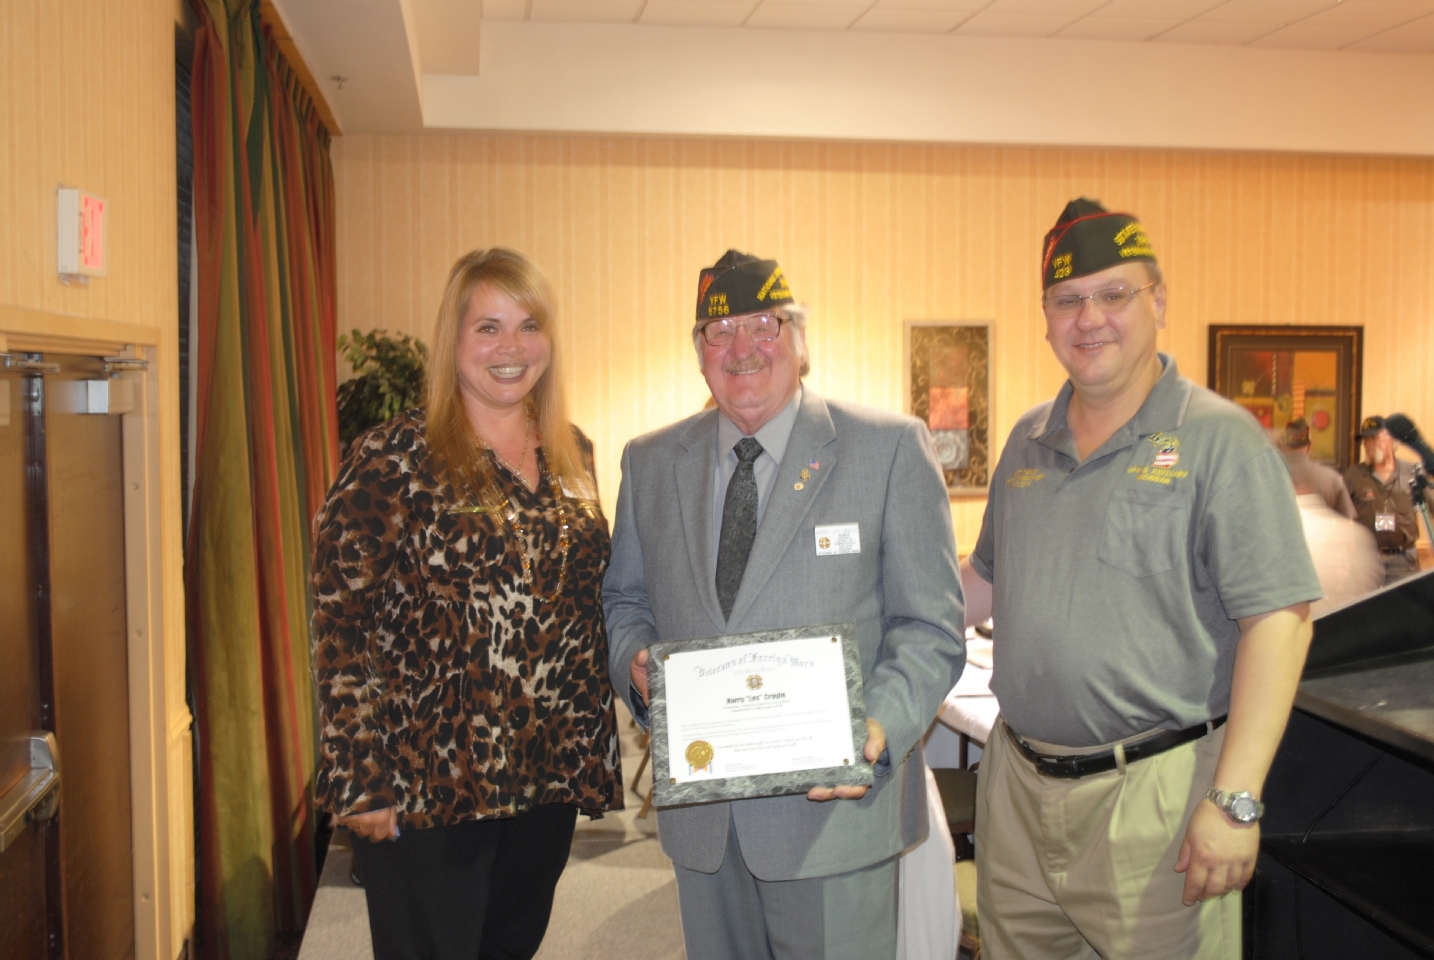 Harry Croyle (c) receiving award for serving as Chairman of Veterans Service Committee. Marlene  Khaireddine (1) VFW Service Office Administrative Assistant, Commander Matt David (r).